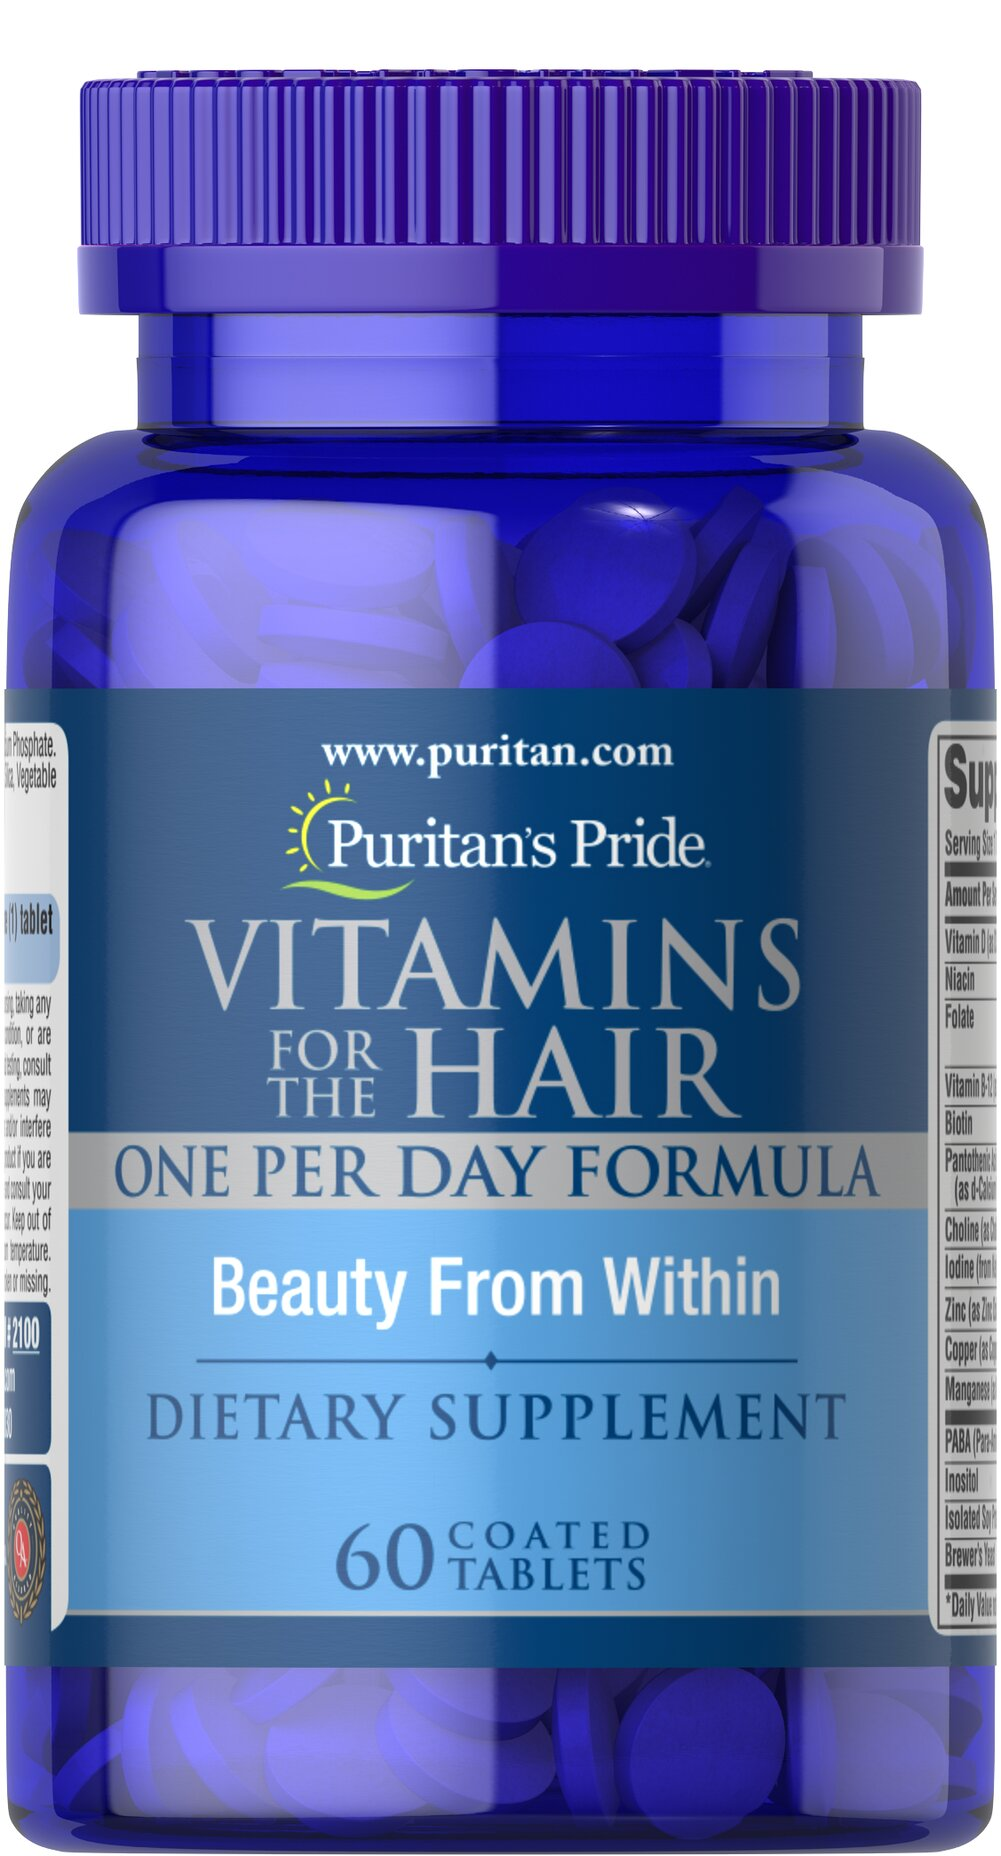 Vitamins for the Hair <p>A Natural Vitamin-Mineral Complex, especially Formulated for your Hair</p><p>Puritan's Pride has formulated Vitamins  for the Hair, to supplement your diet plan for a healthier looking head of hair.  Feed your hair the vitamins and minerals needed to help it be its healthiest.**</p> 60 Coated Caplets